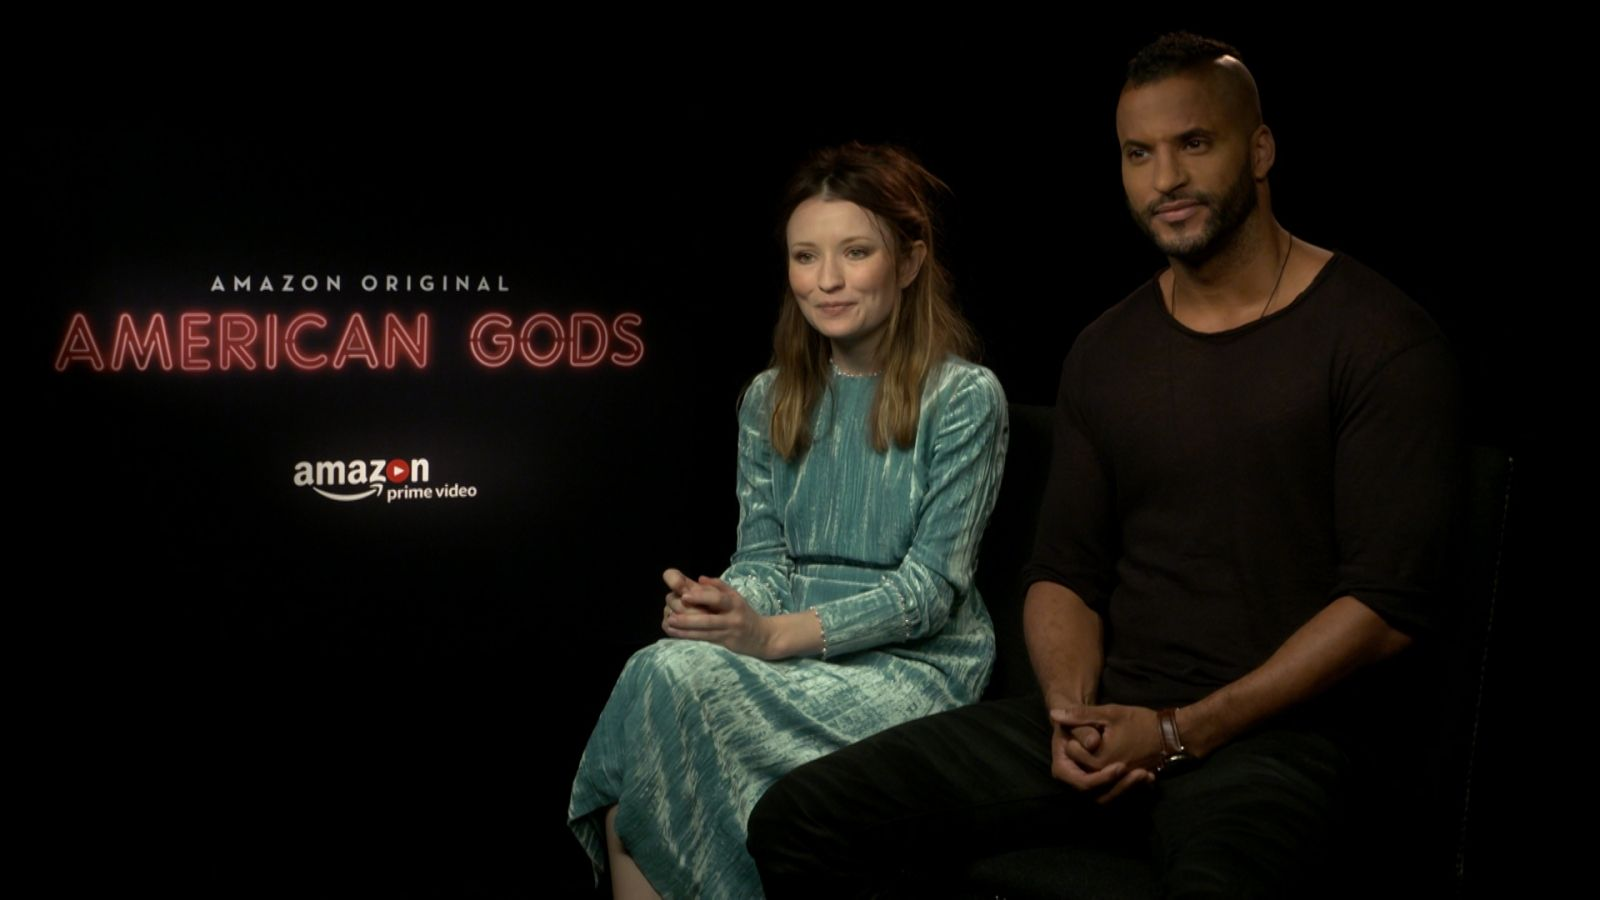 american-gods-cast-speak-on-how-it-reflects-u-s-immigration-today